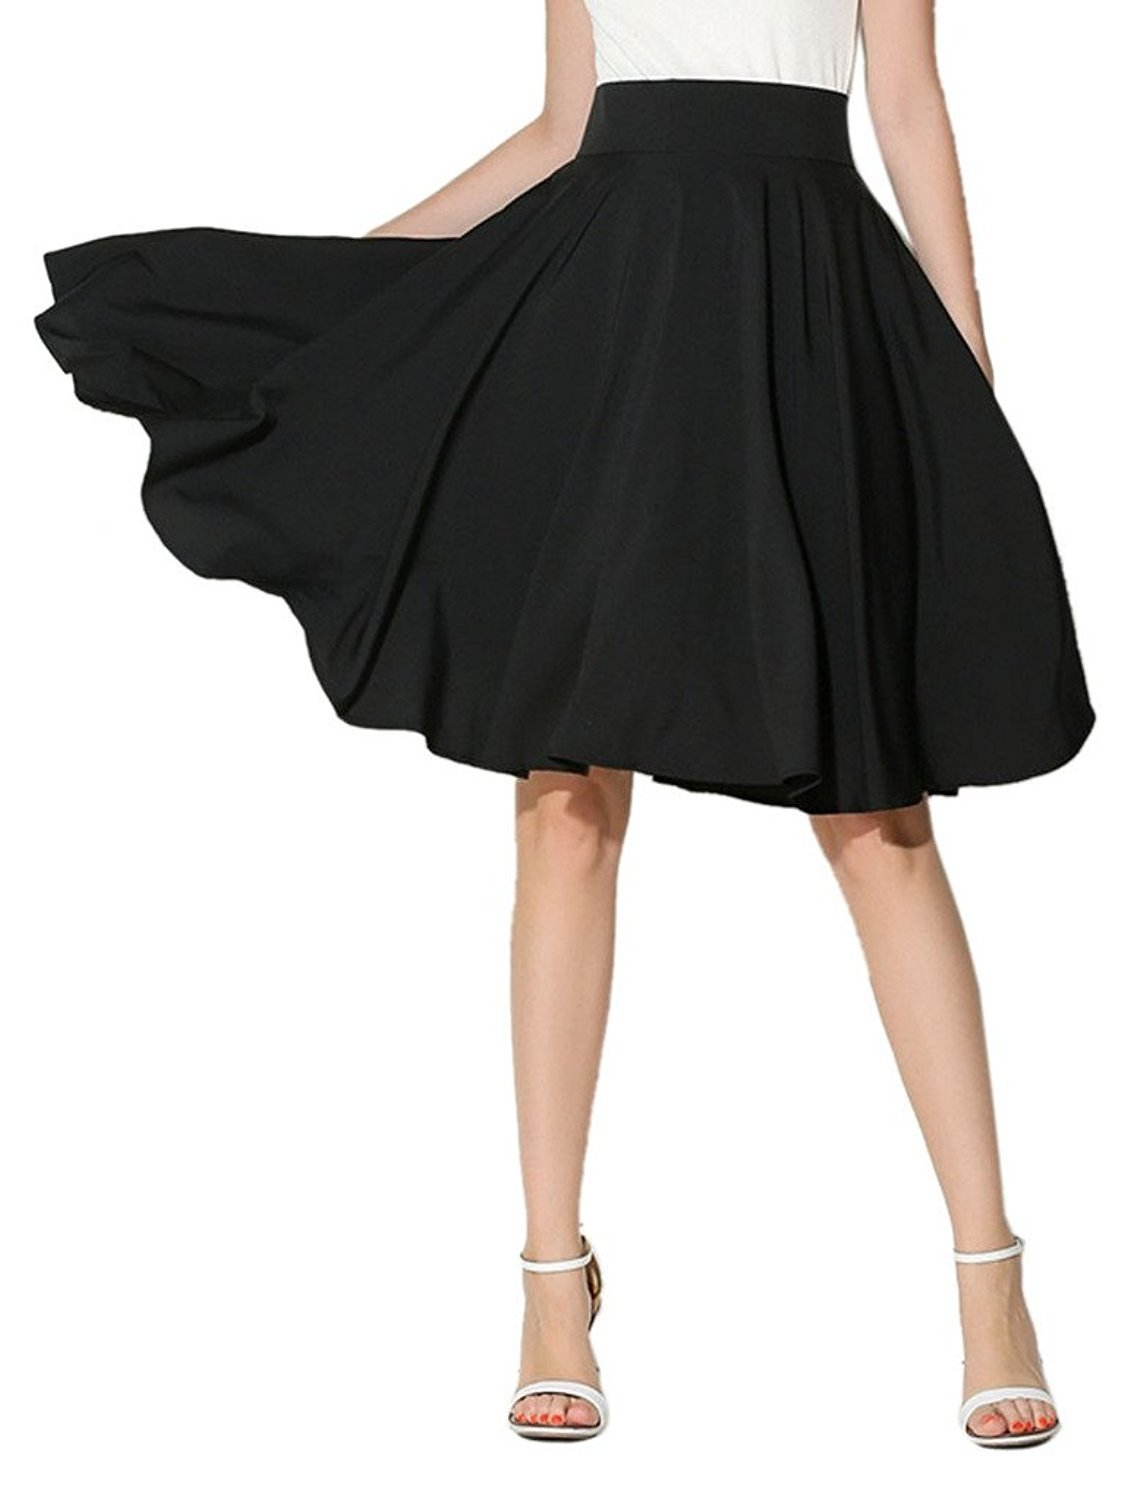 CHOiES record your inspired fashion Women's Casual Plain High Elastic Waist Plus Size Midi Skater Skirt 1x